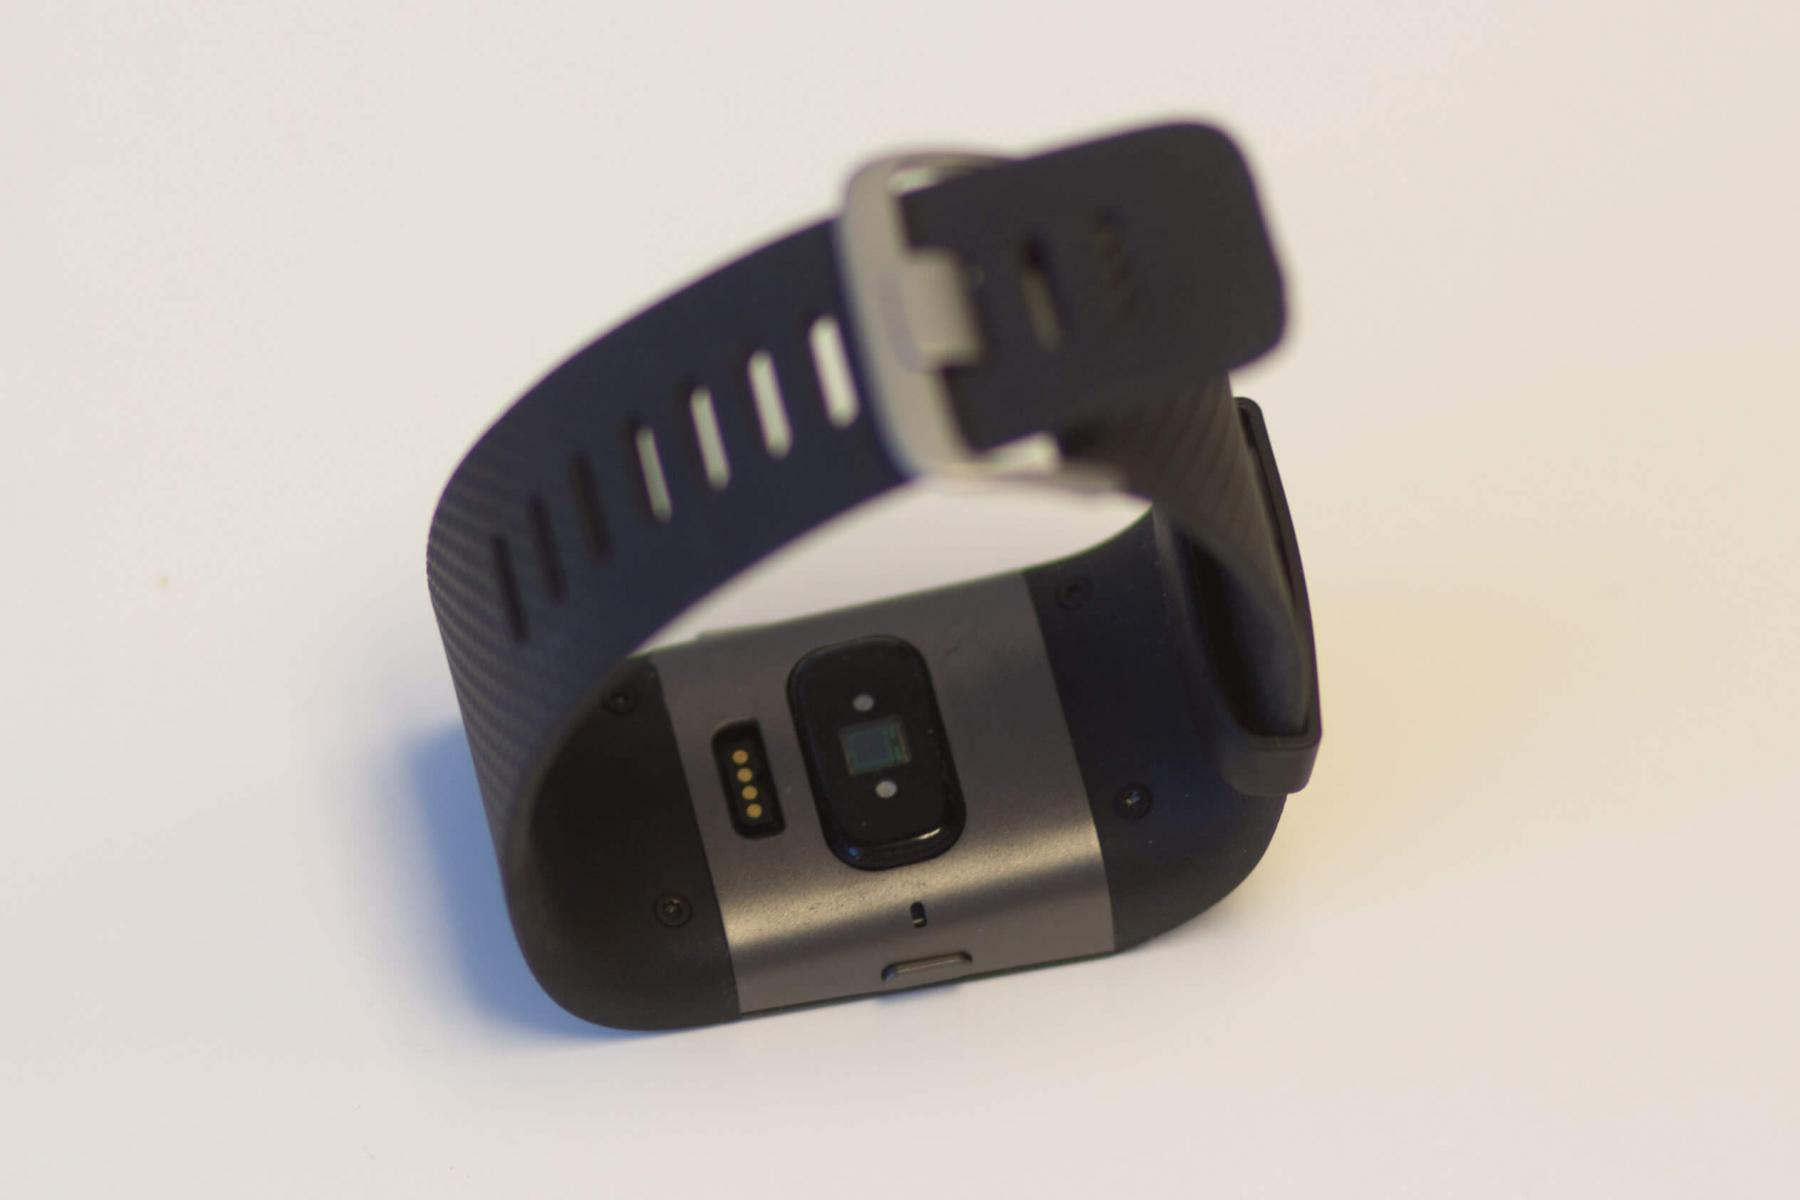 Fitbit Surge Heart Rate Monitor